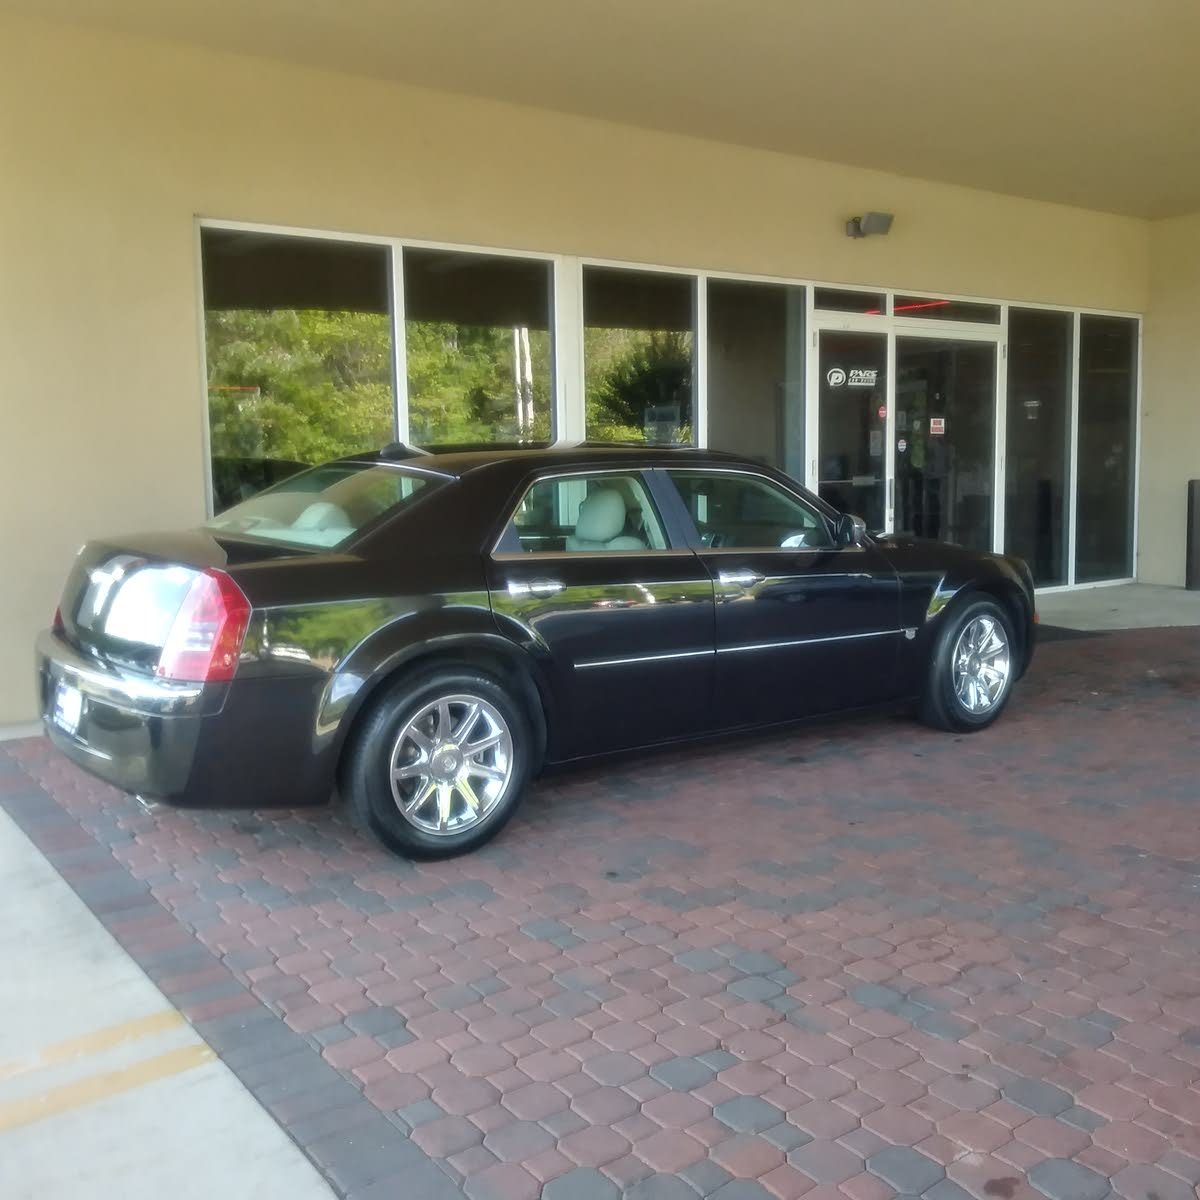 ... chrysler 300 c and it rides like a champ. Its just how you maintain  your vehicle, my dad have one with over 200k miles and it drives like it  just came ...